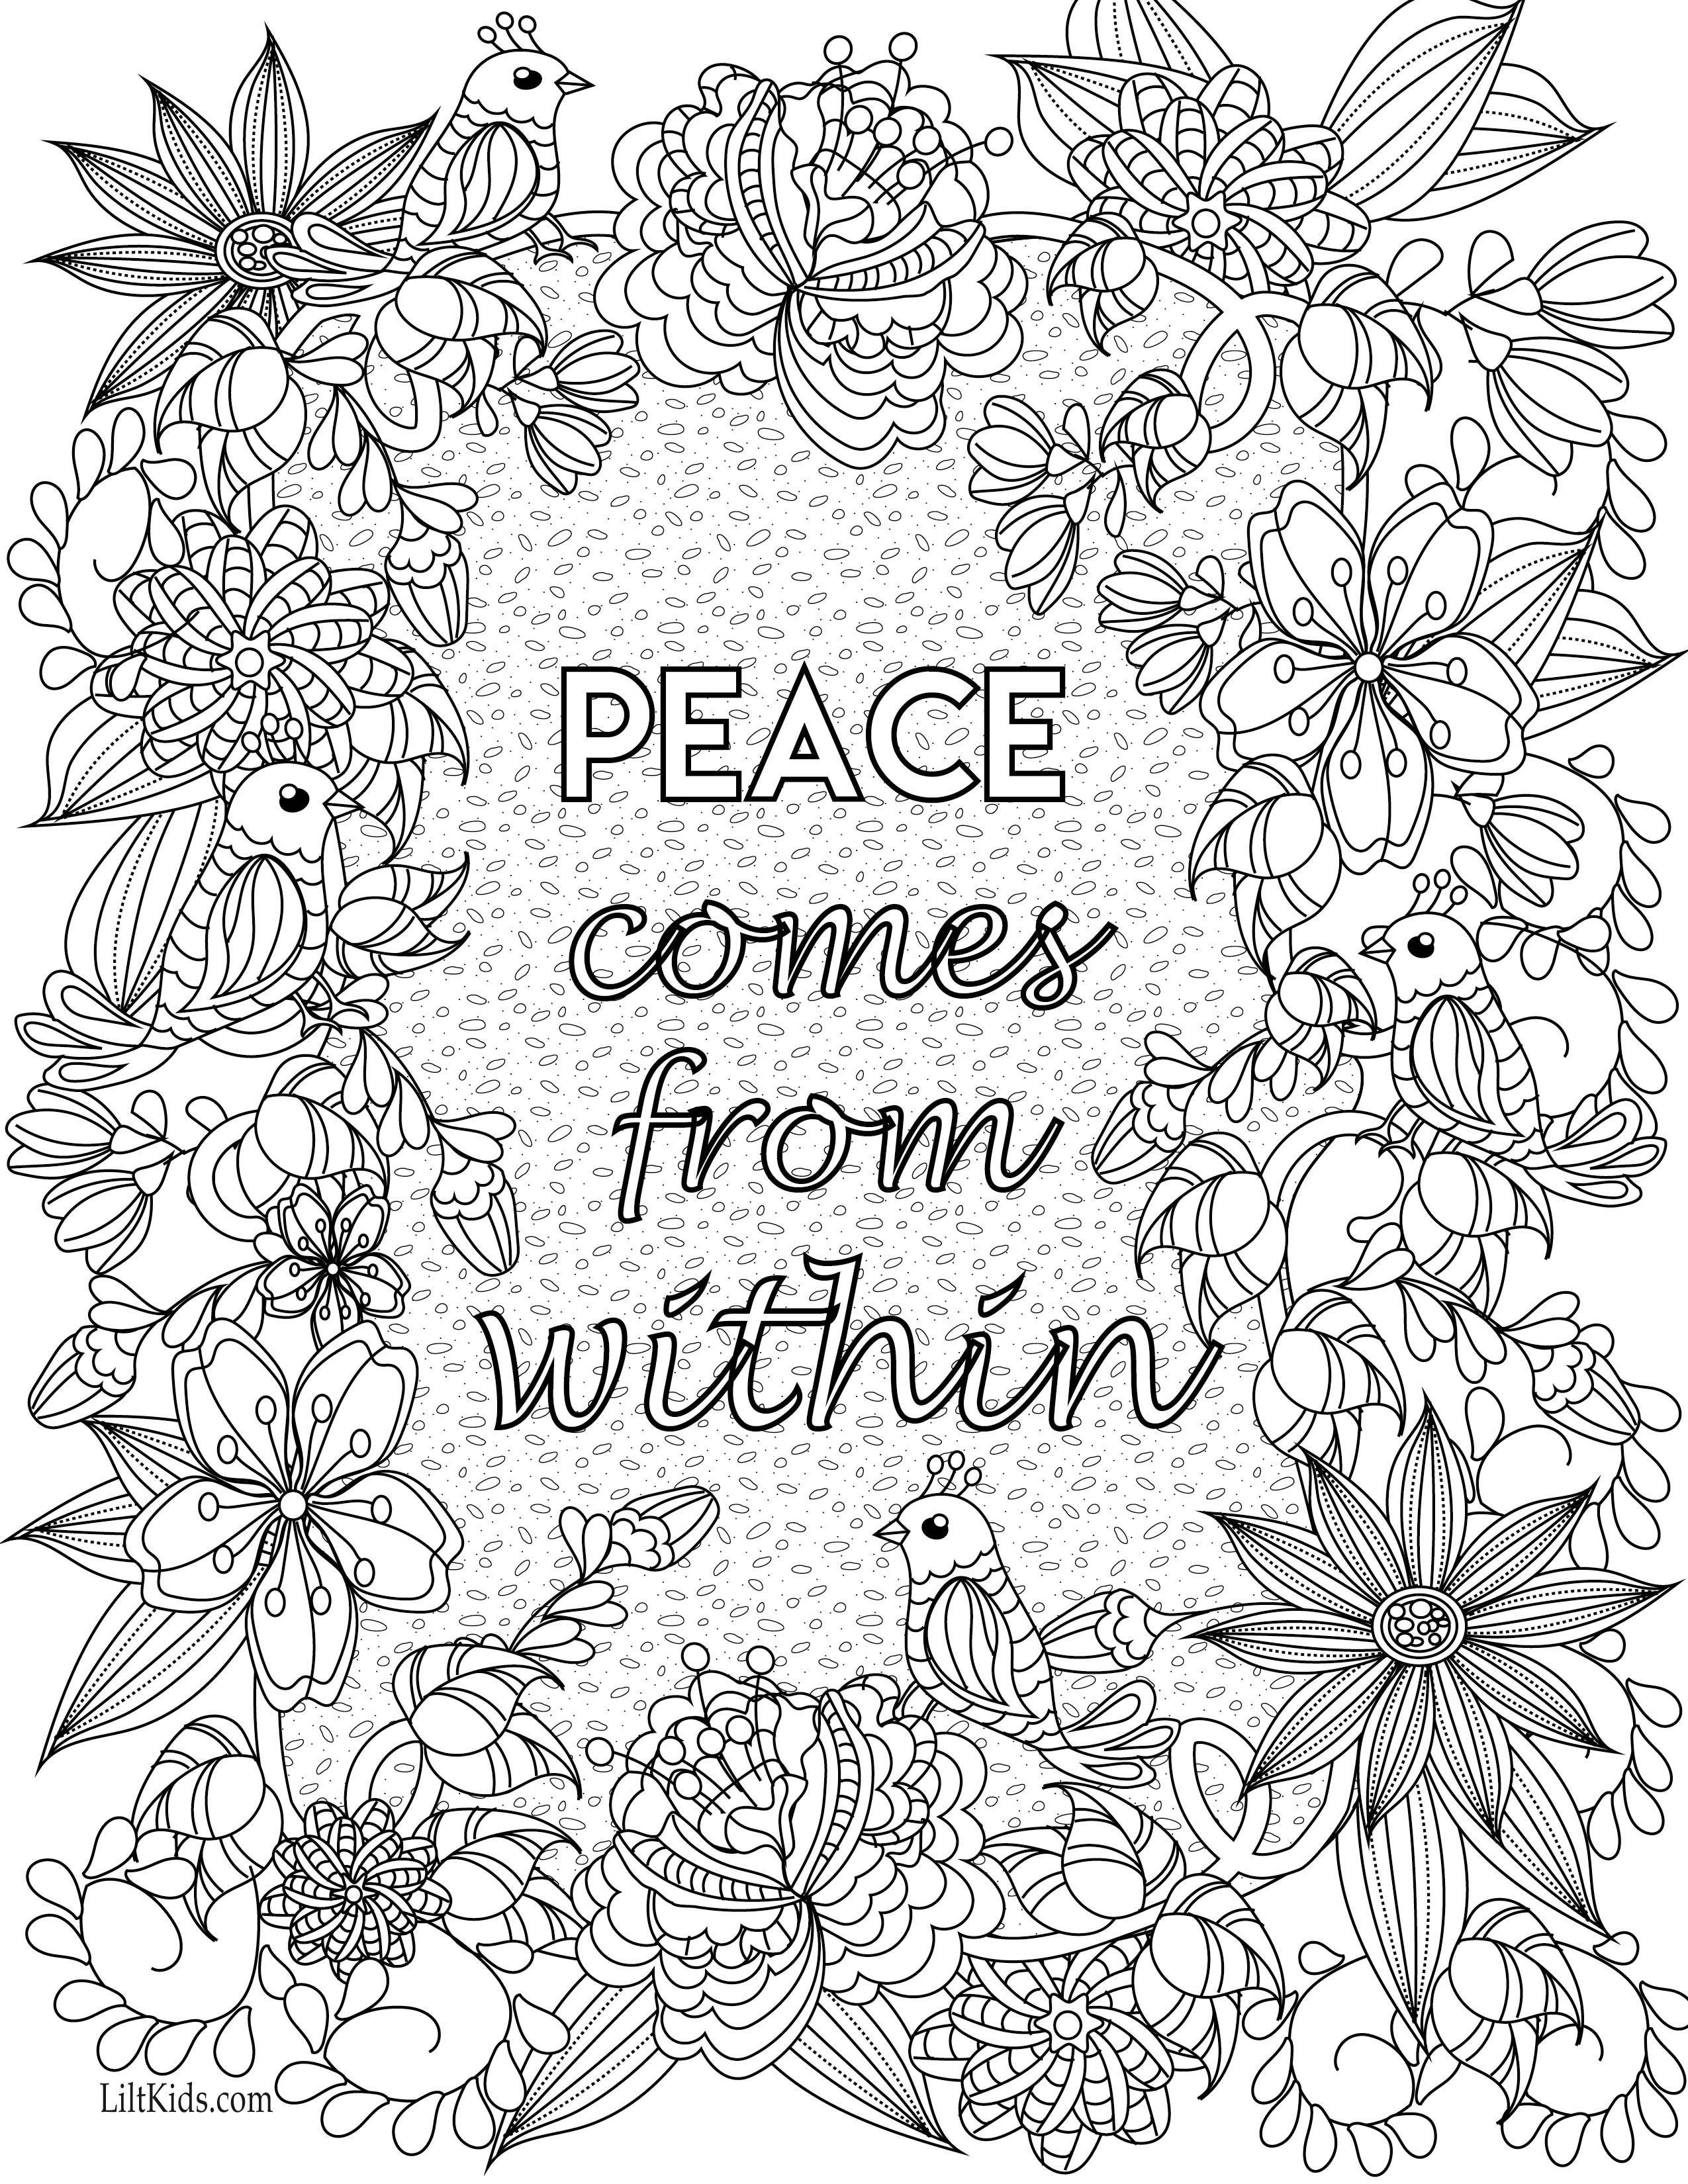 4500 Top Coloring Pages For Adults Inspirational Pictures